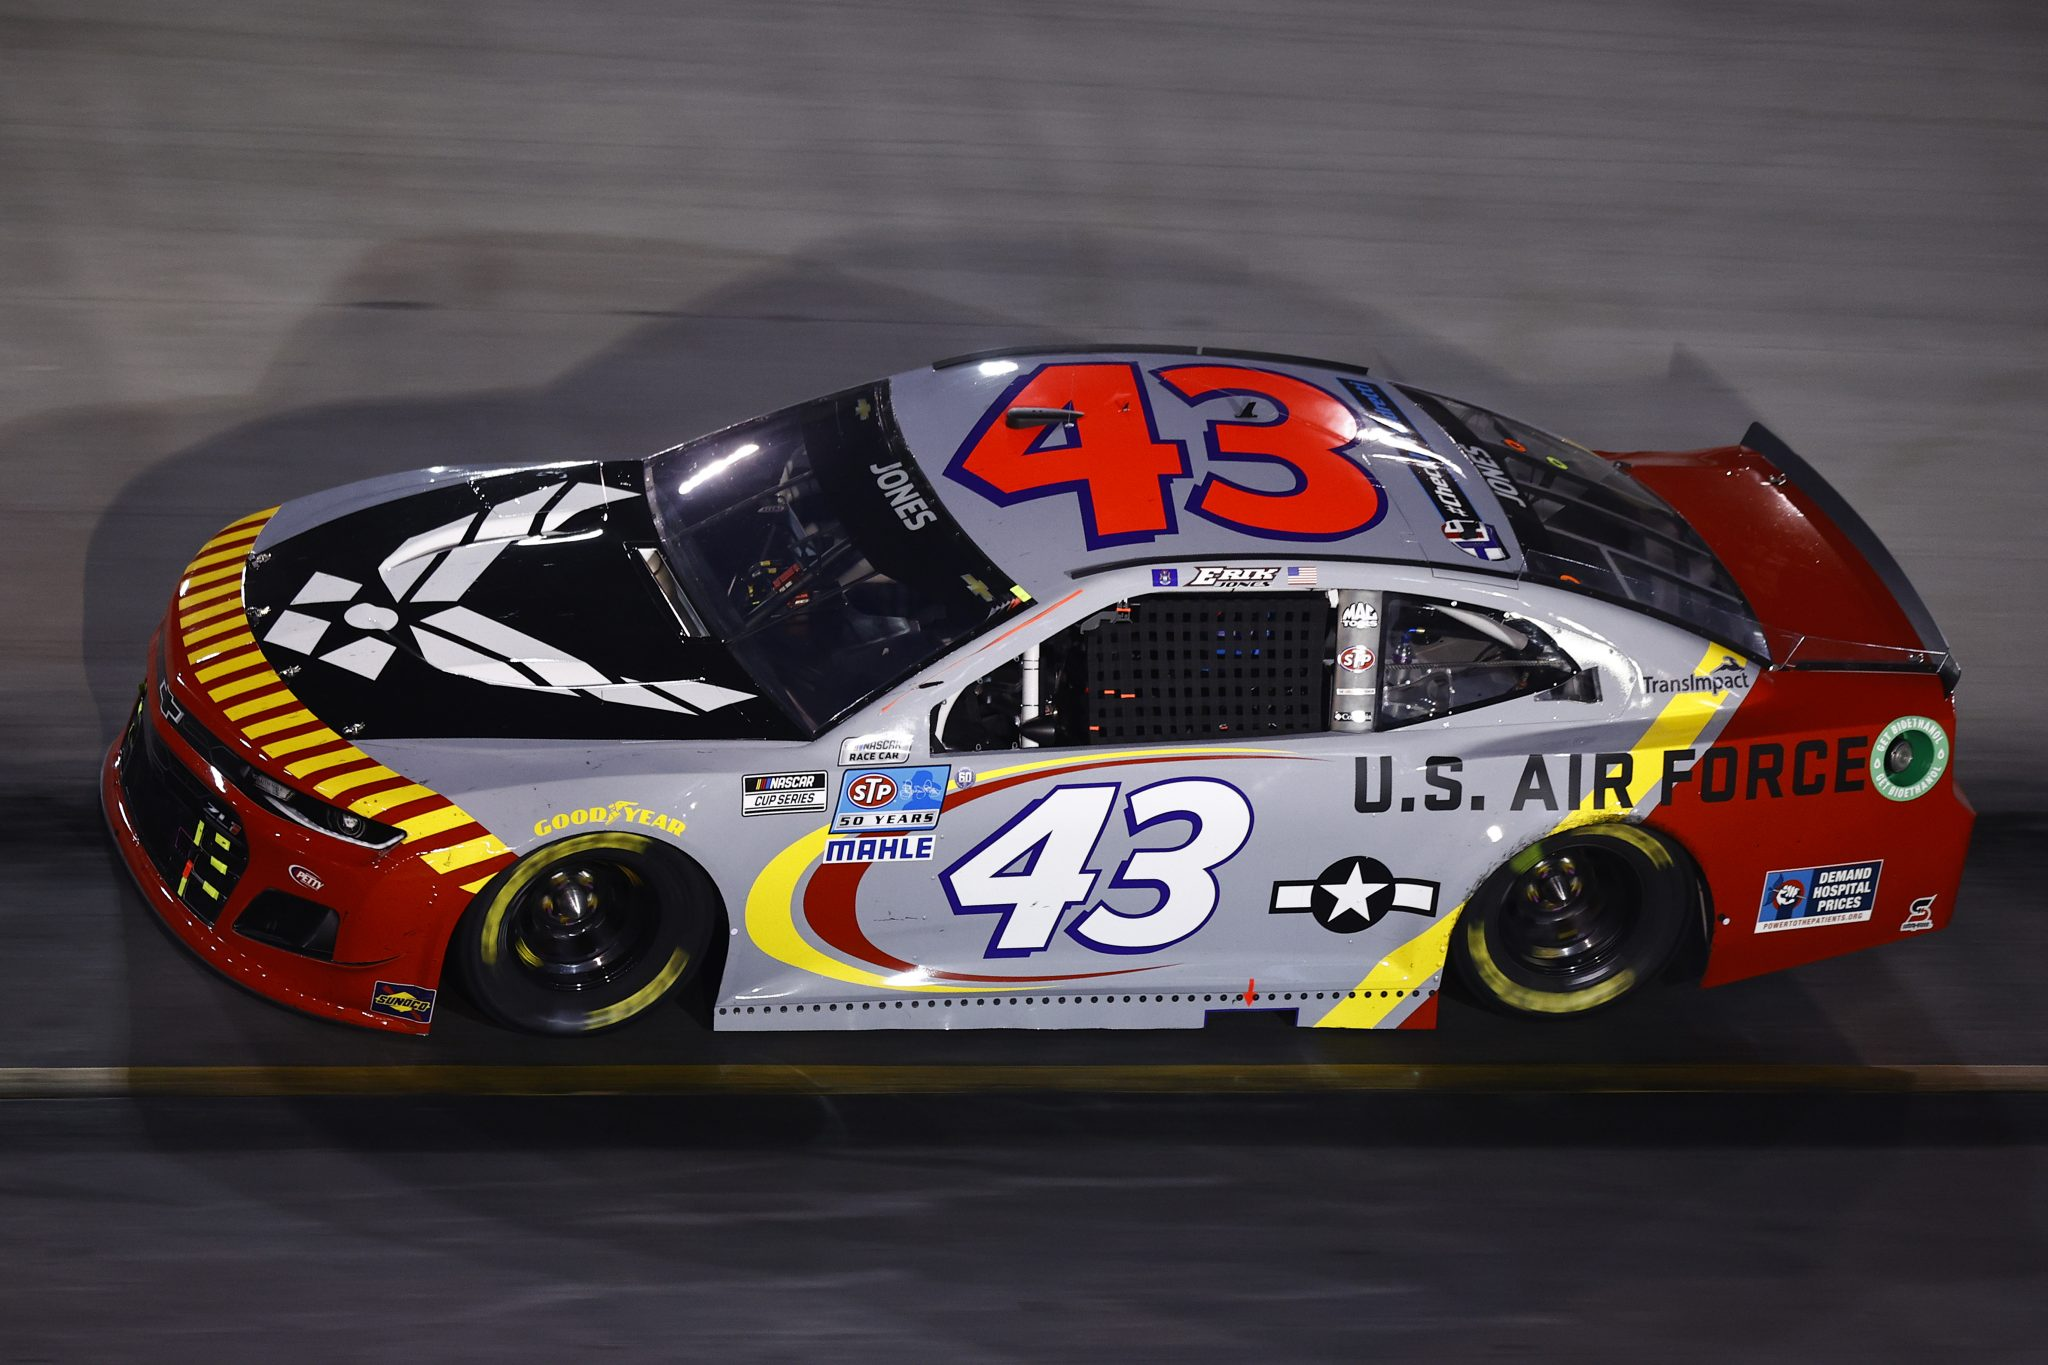 BRISTOL, TENNESSEE - SEPTEMBER 18: Erik Jones, driver of the #43 US Air Force Tuskegee Airmen Chevrolet, drives during the NASCAR Cup Series Bass Pro Shops Night Race at Bristol Motor Speedway on September 18, 2021 in Bristol, Tennessee. (Photo by Jared C. Tilton/Getty Images)   Getty Images